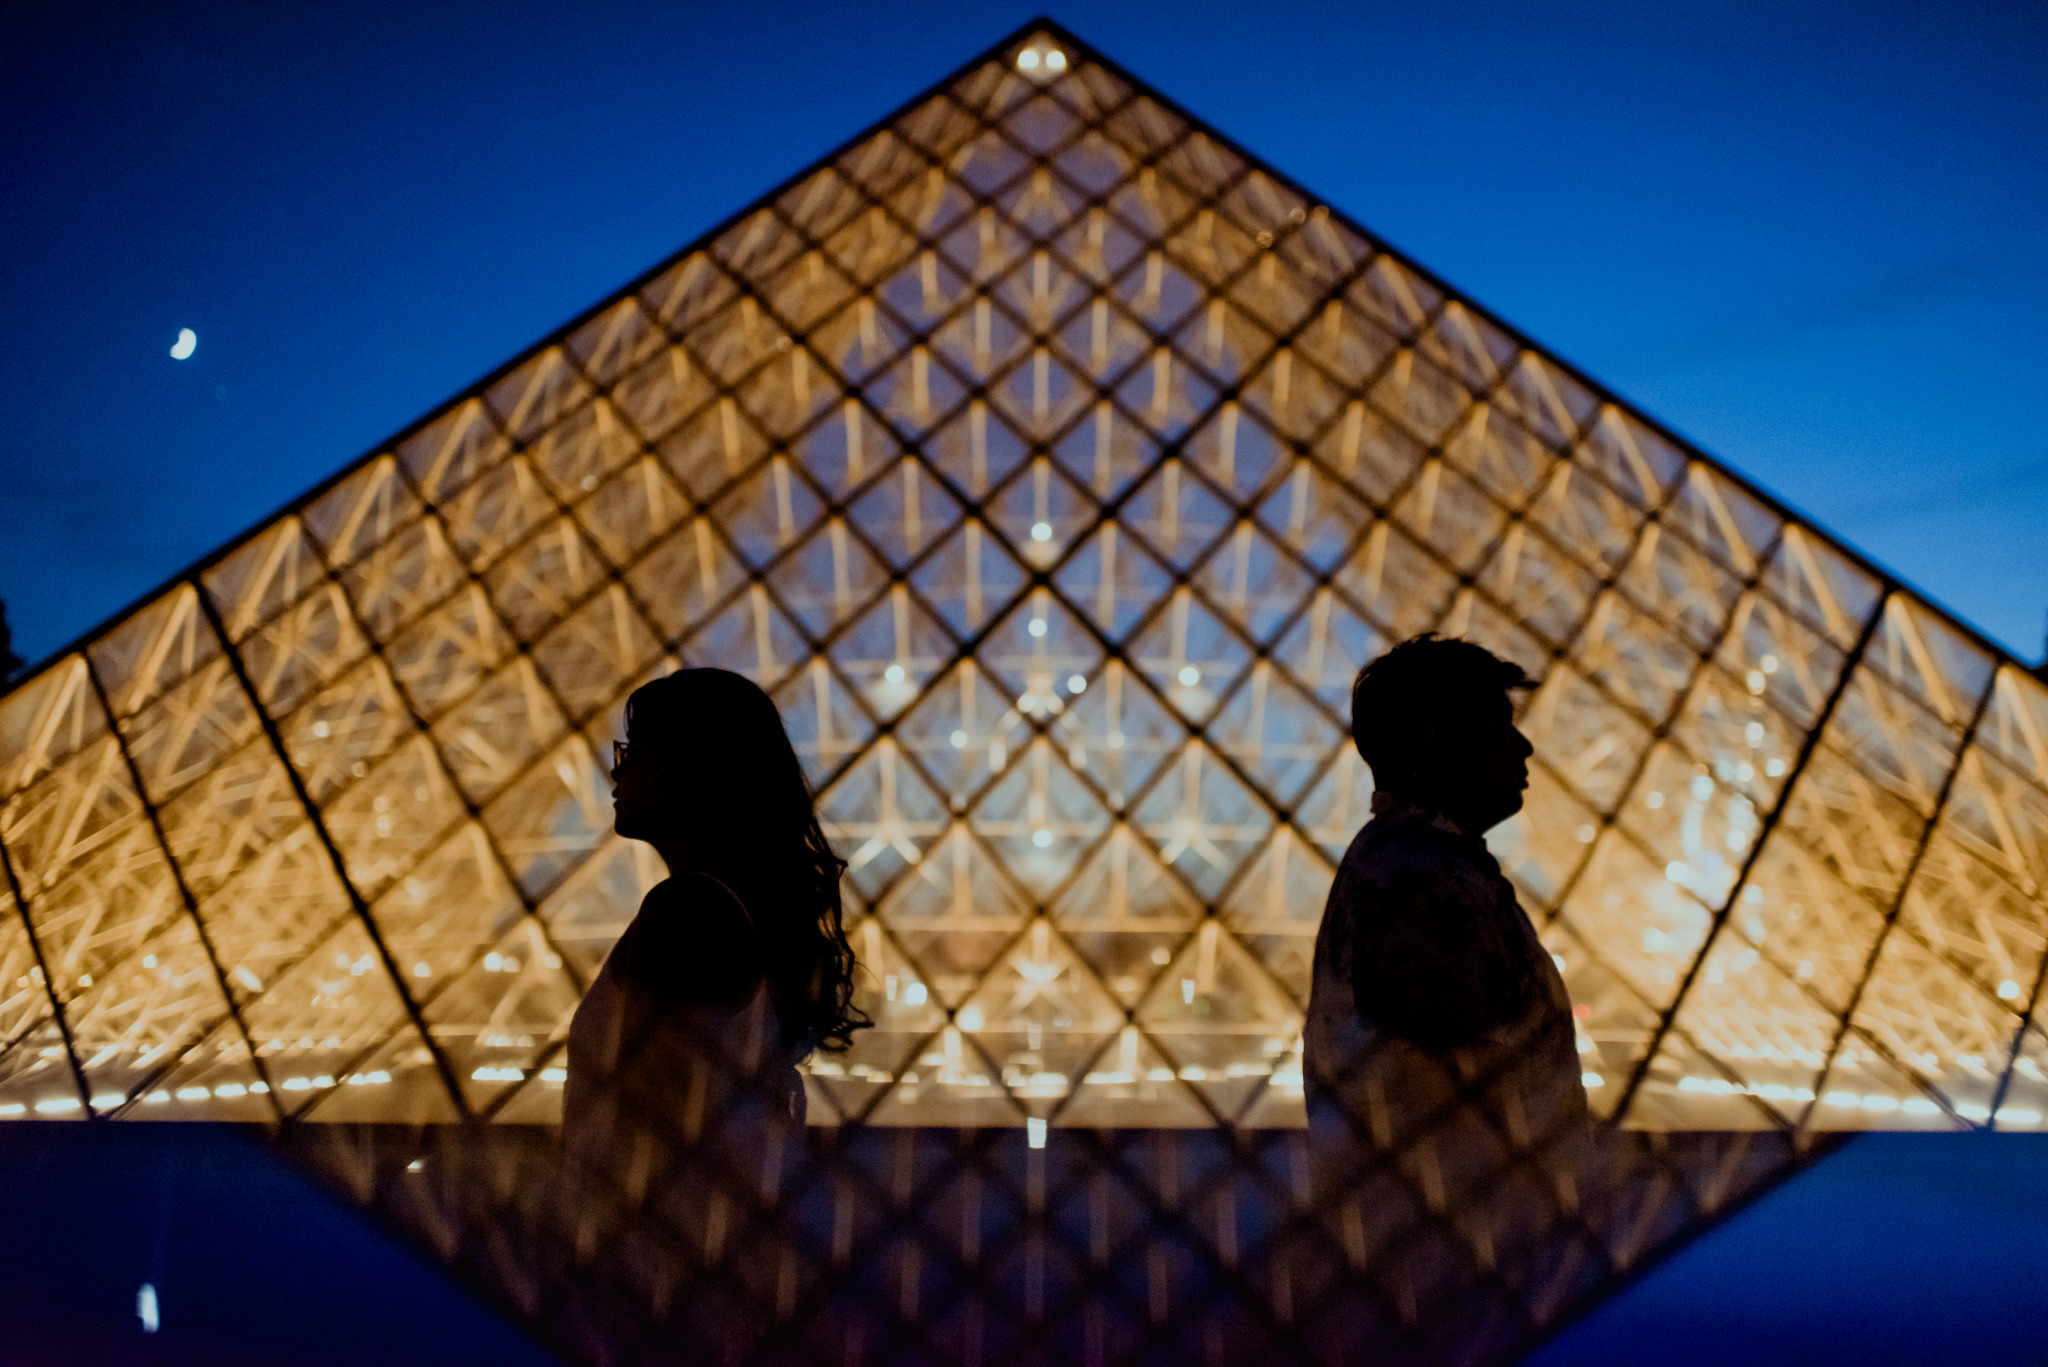 Silhouette of a man and a woman facing away from each other in front of the Louvre Pyramids.